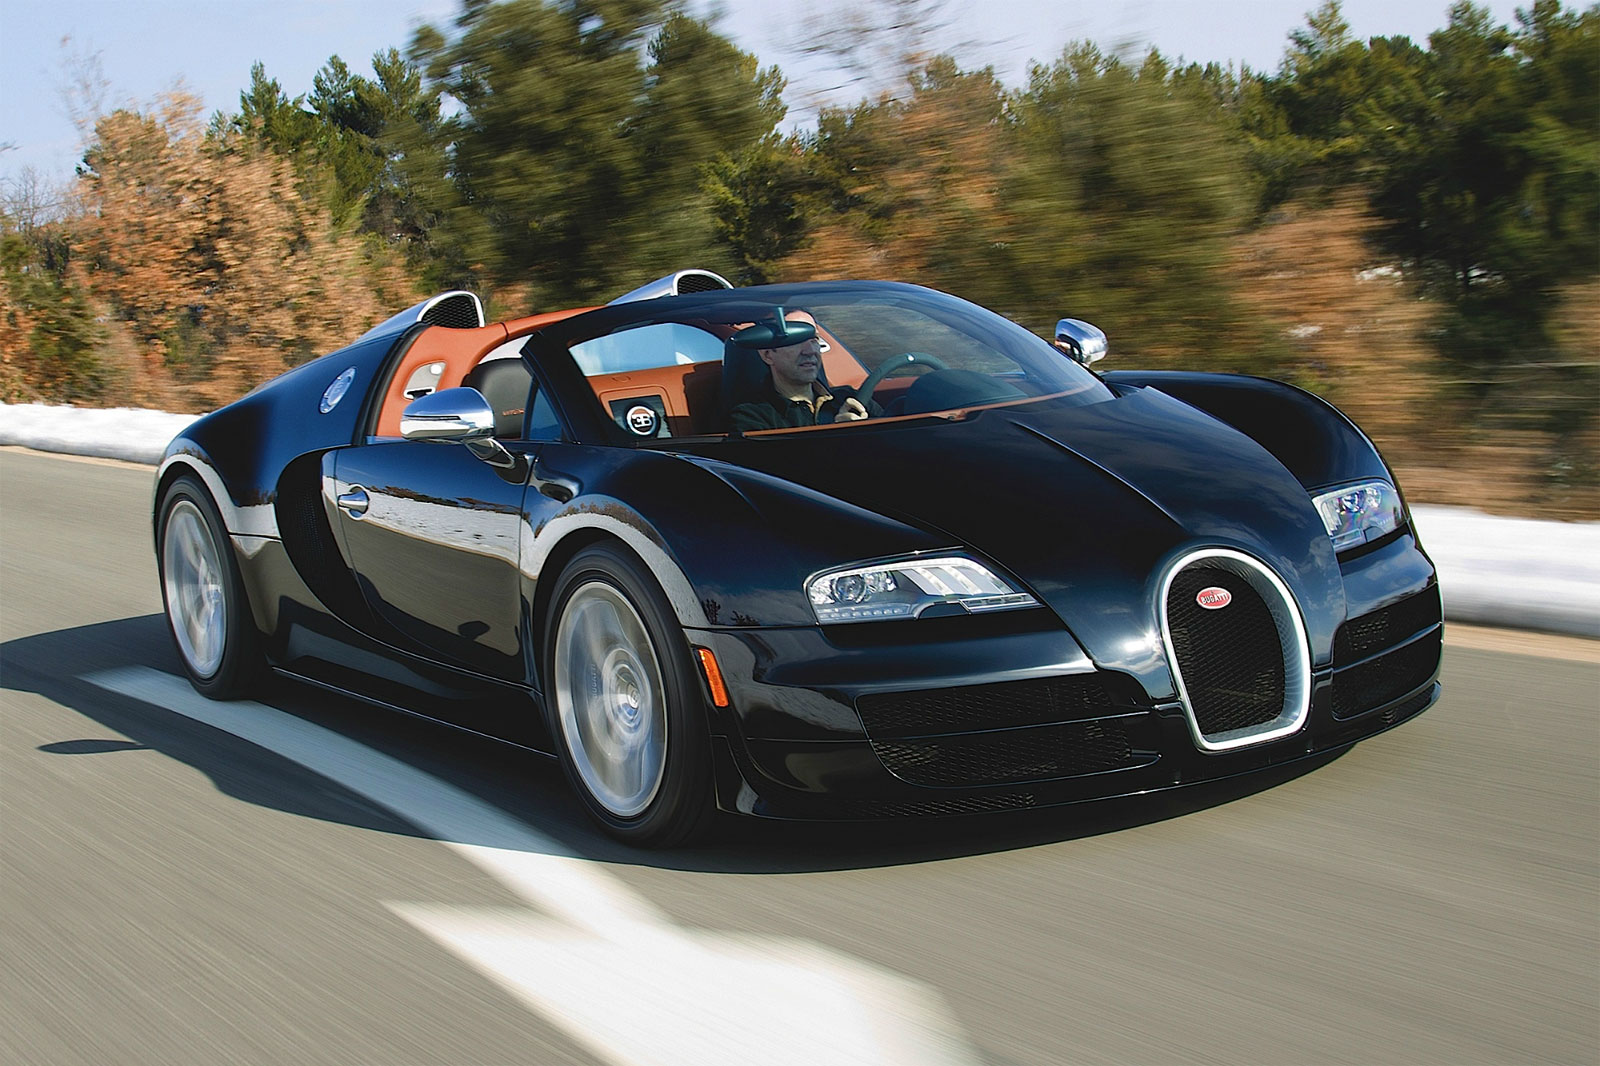 Bugatti Veyron wallpapers and high resolution pictures